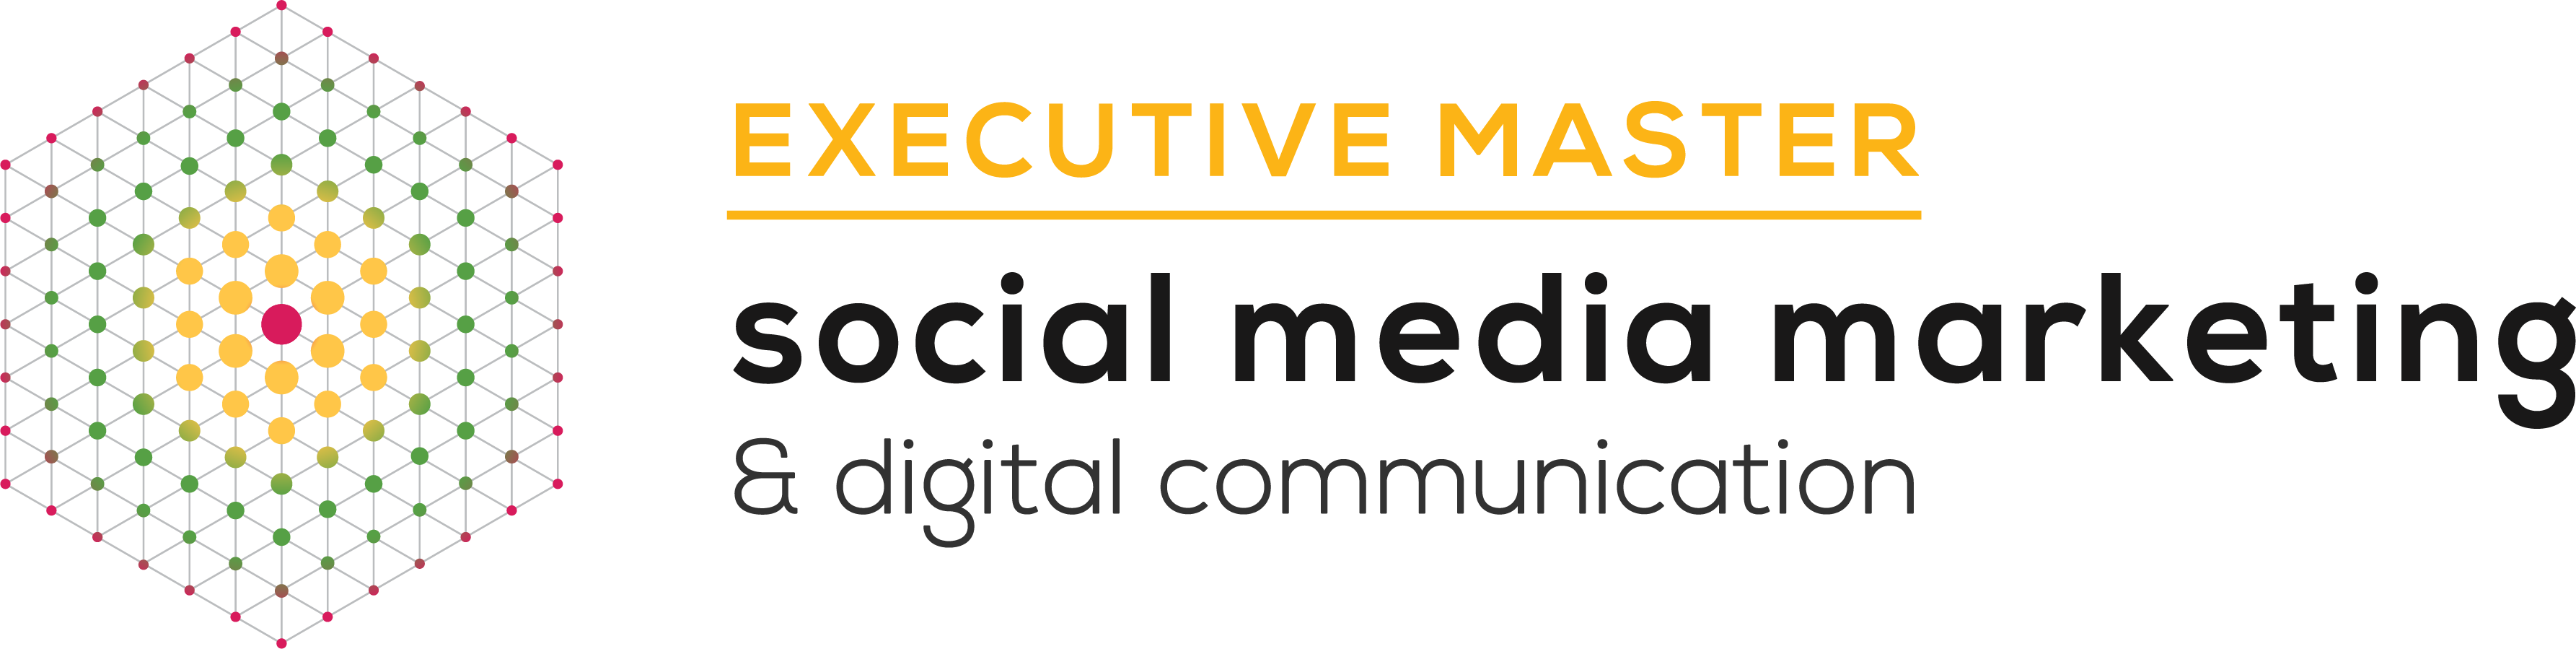 Master Social Media Marketing - Iulm